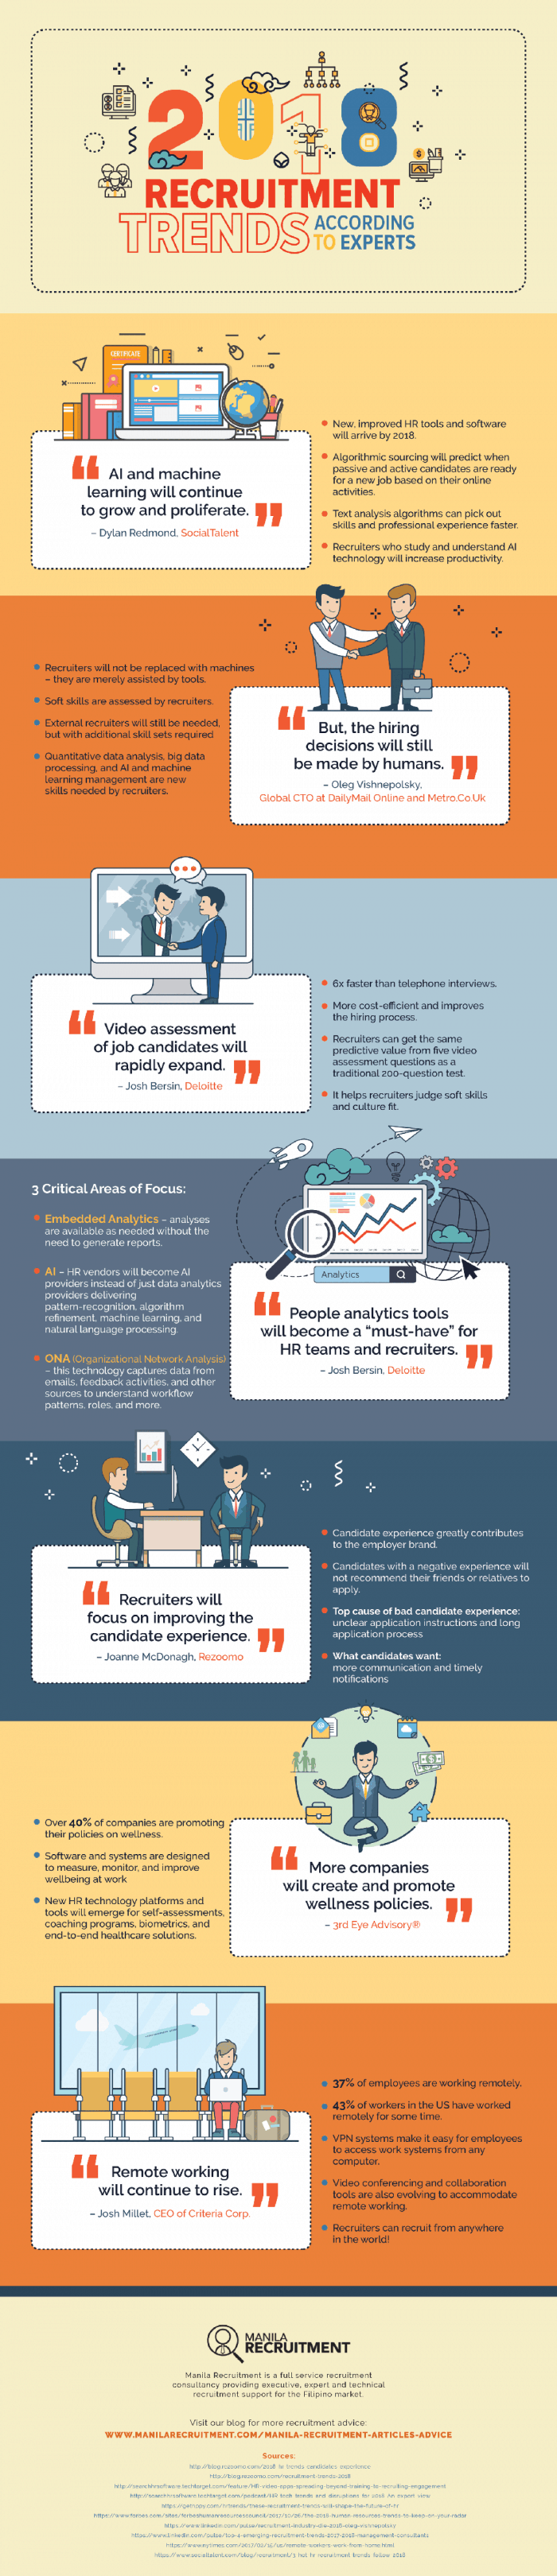 infographic describes how to get hired, recruitment trends, how to land a great job